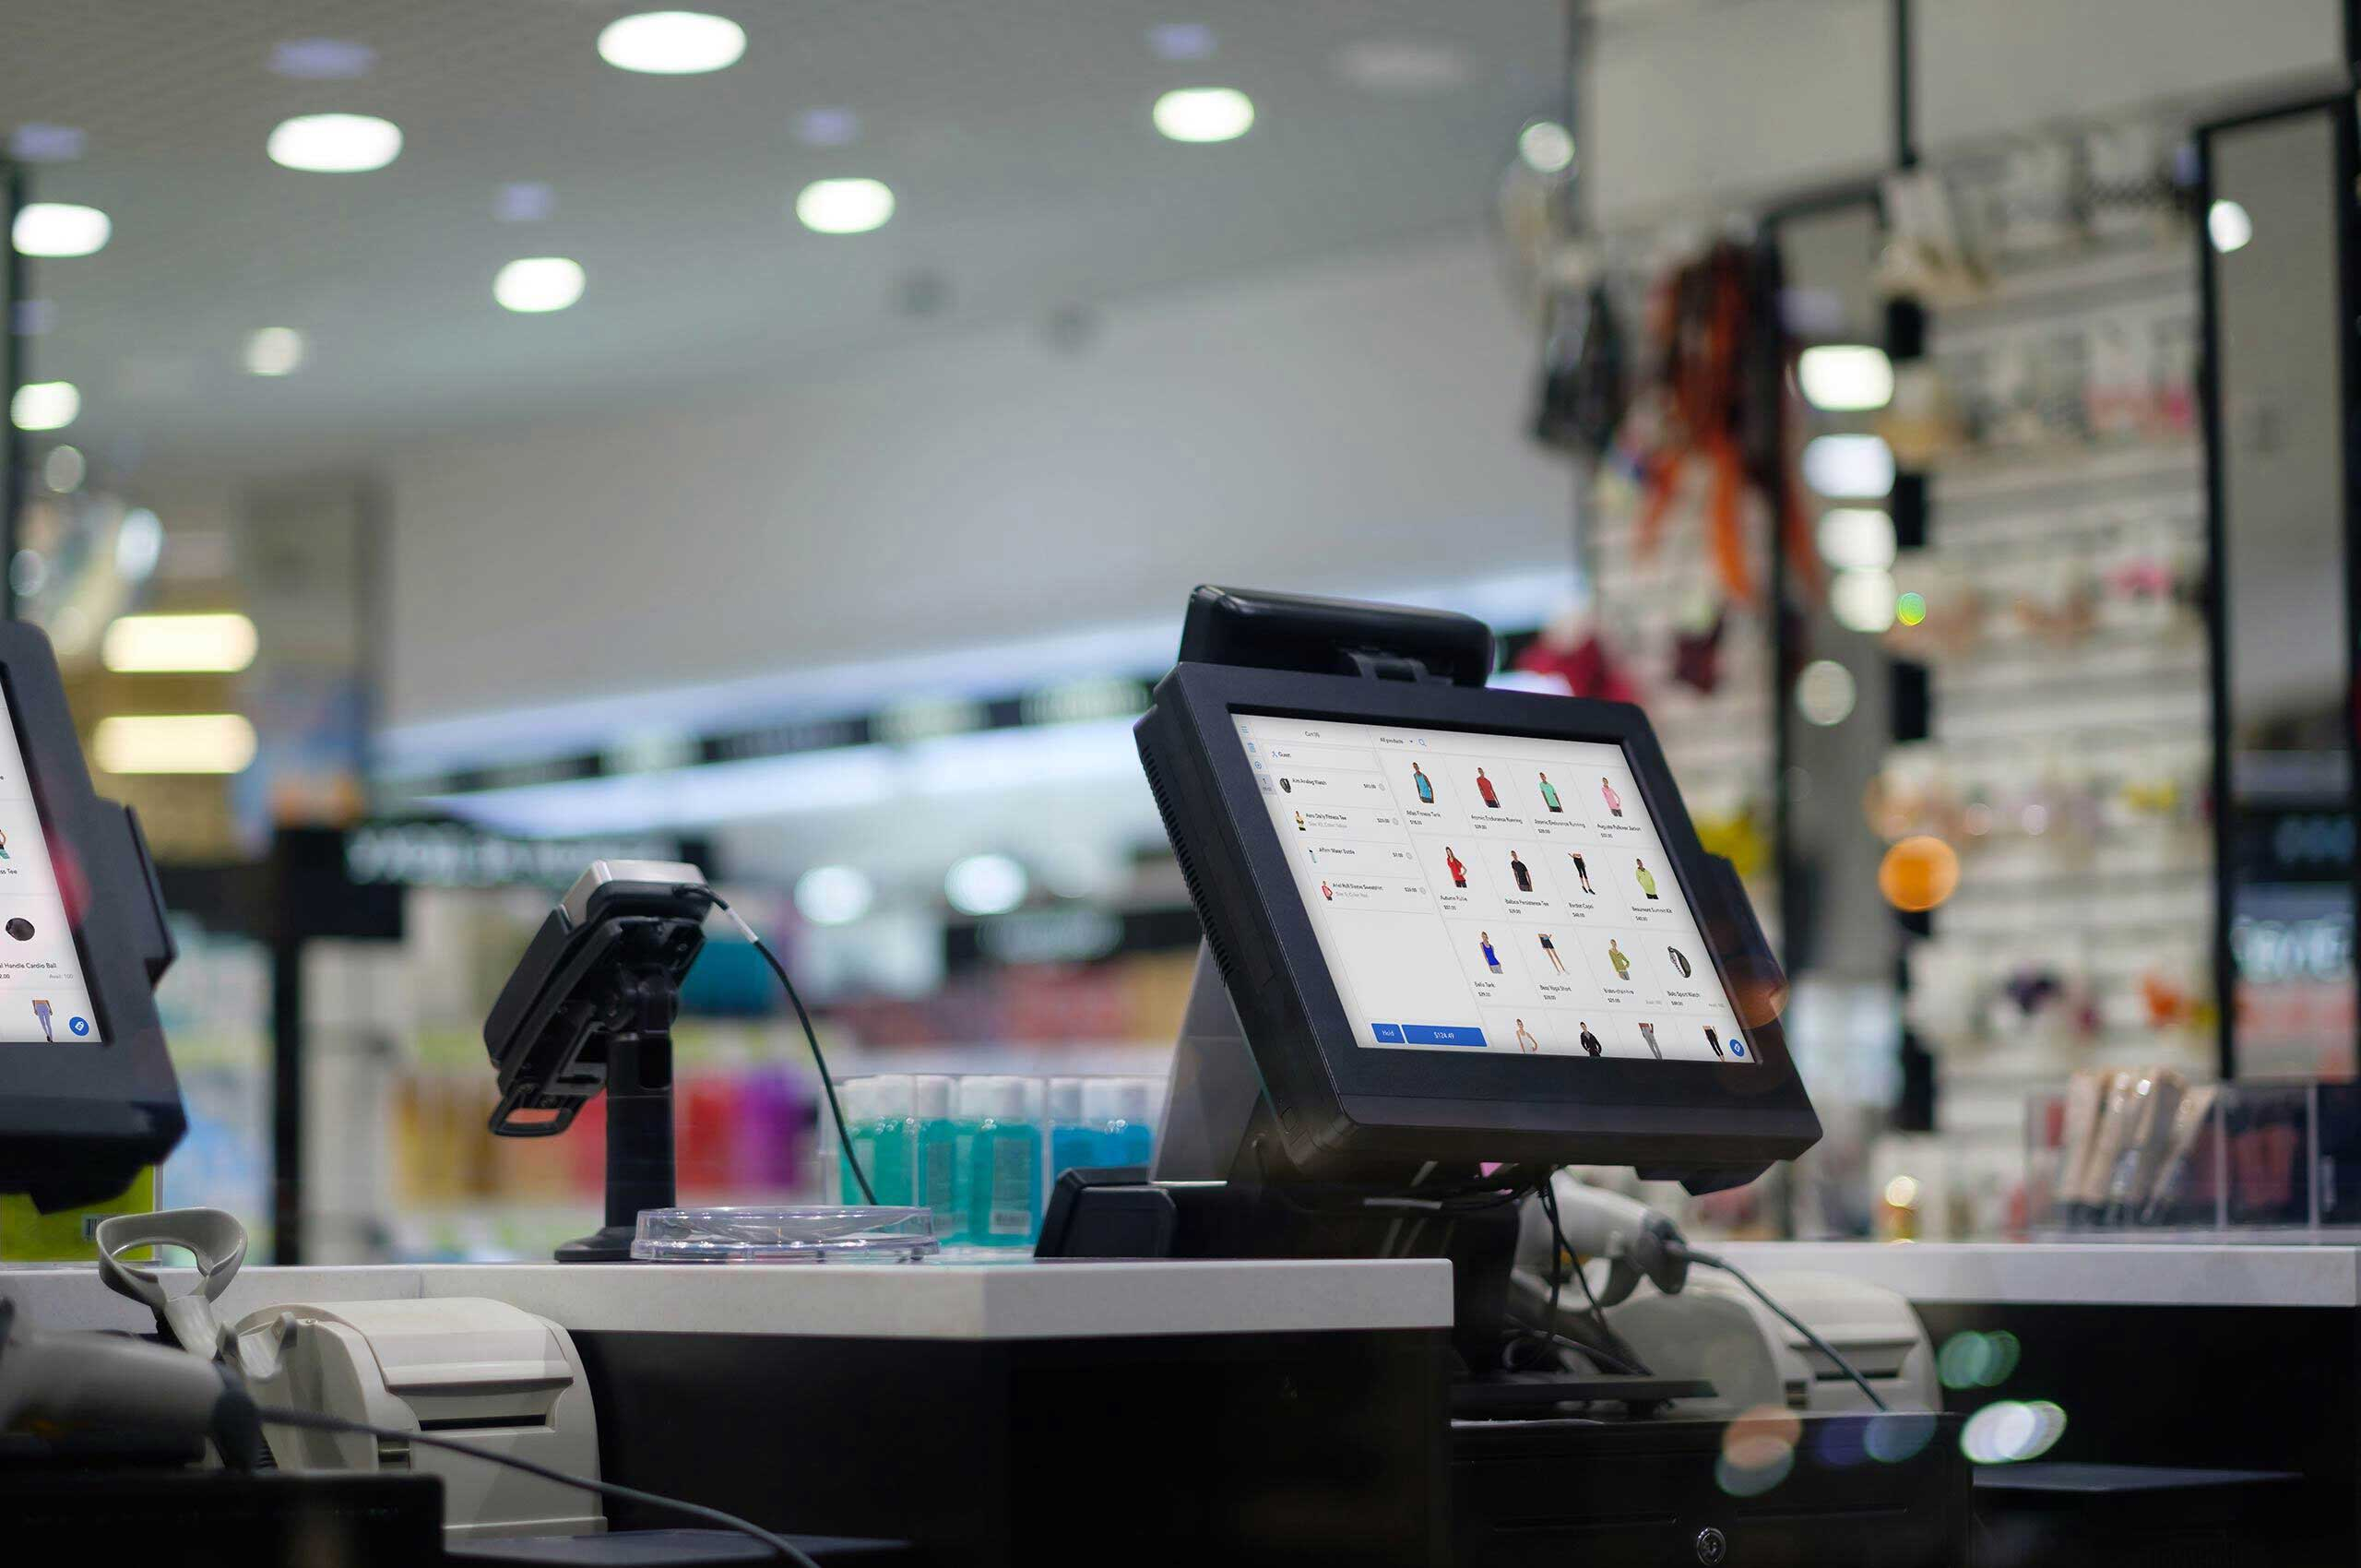 Magestore POS makes omnichannel easy on Magento